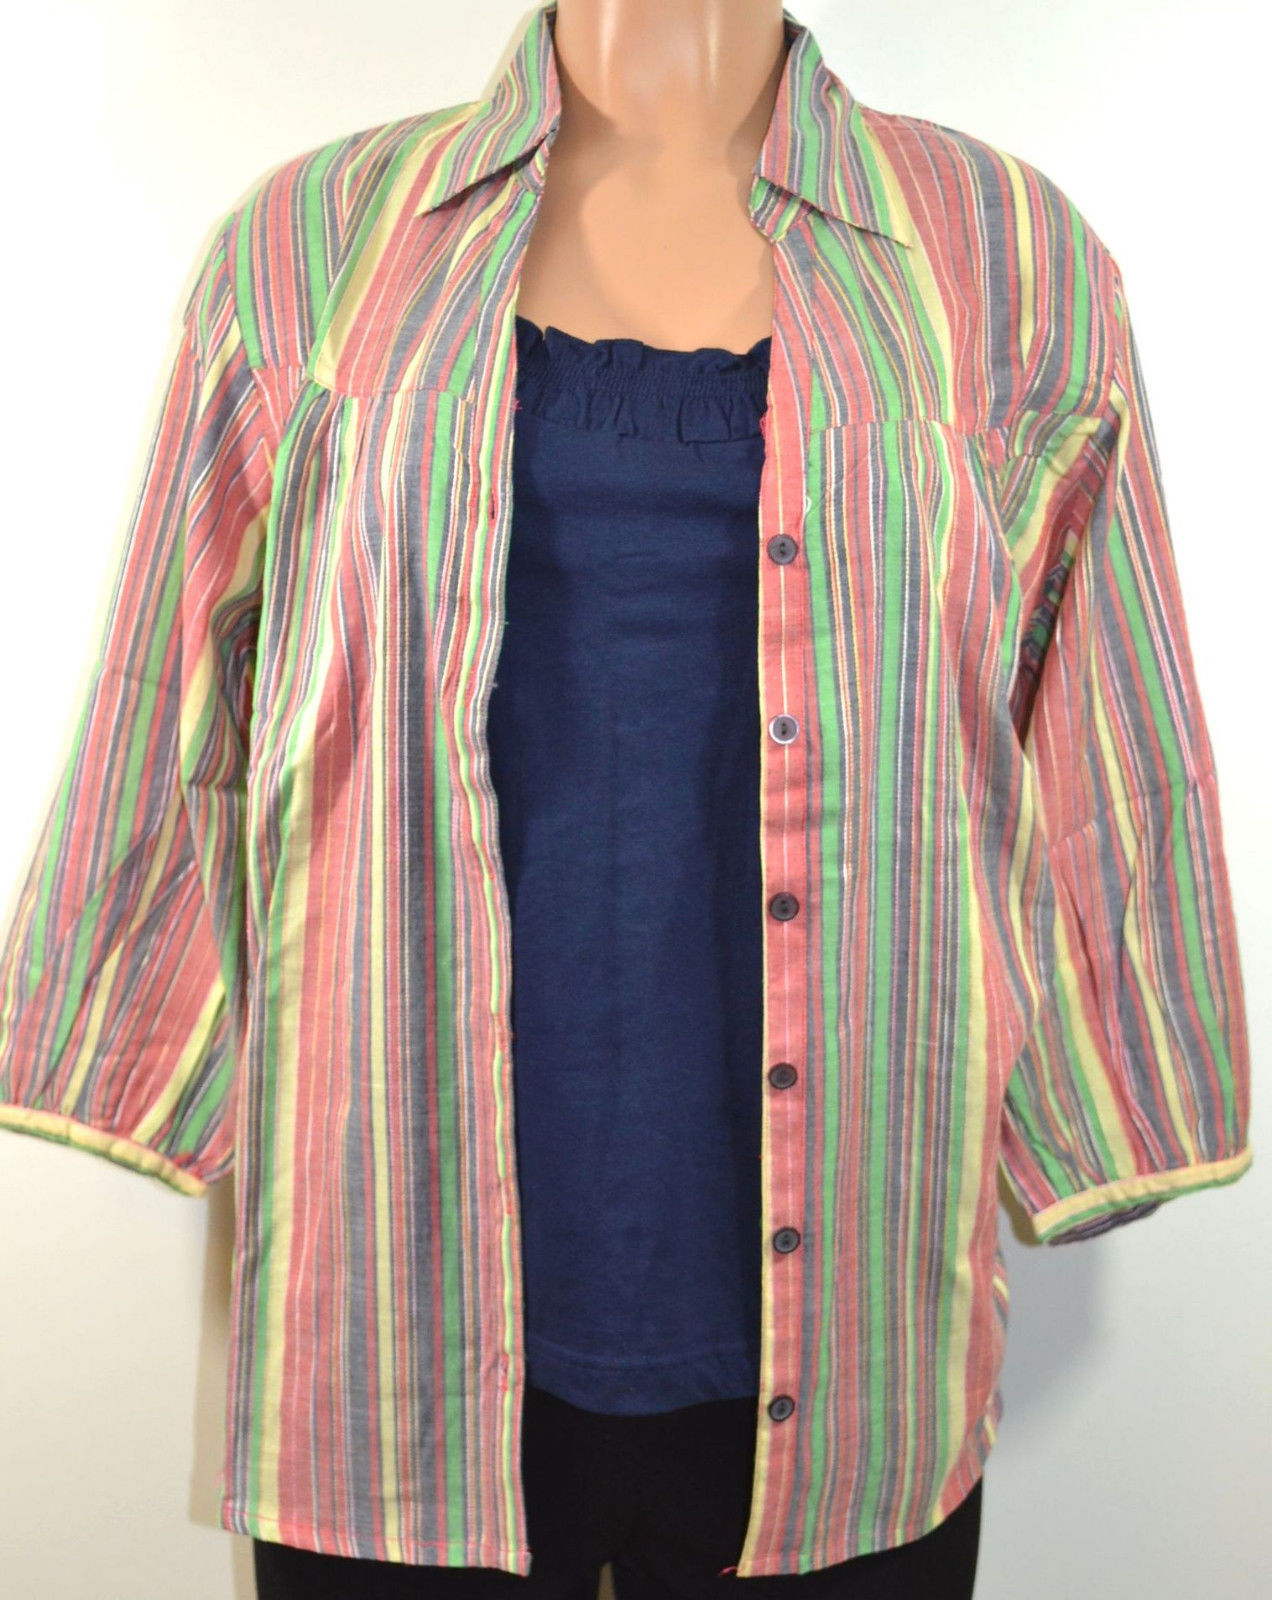 2f2ab2123c7 Dress Barn Women s Plus Size Striped Shirt 2 and 20 similar items. S l1600